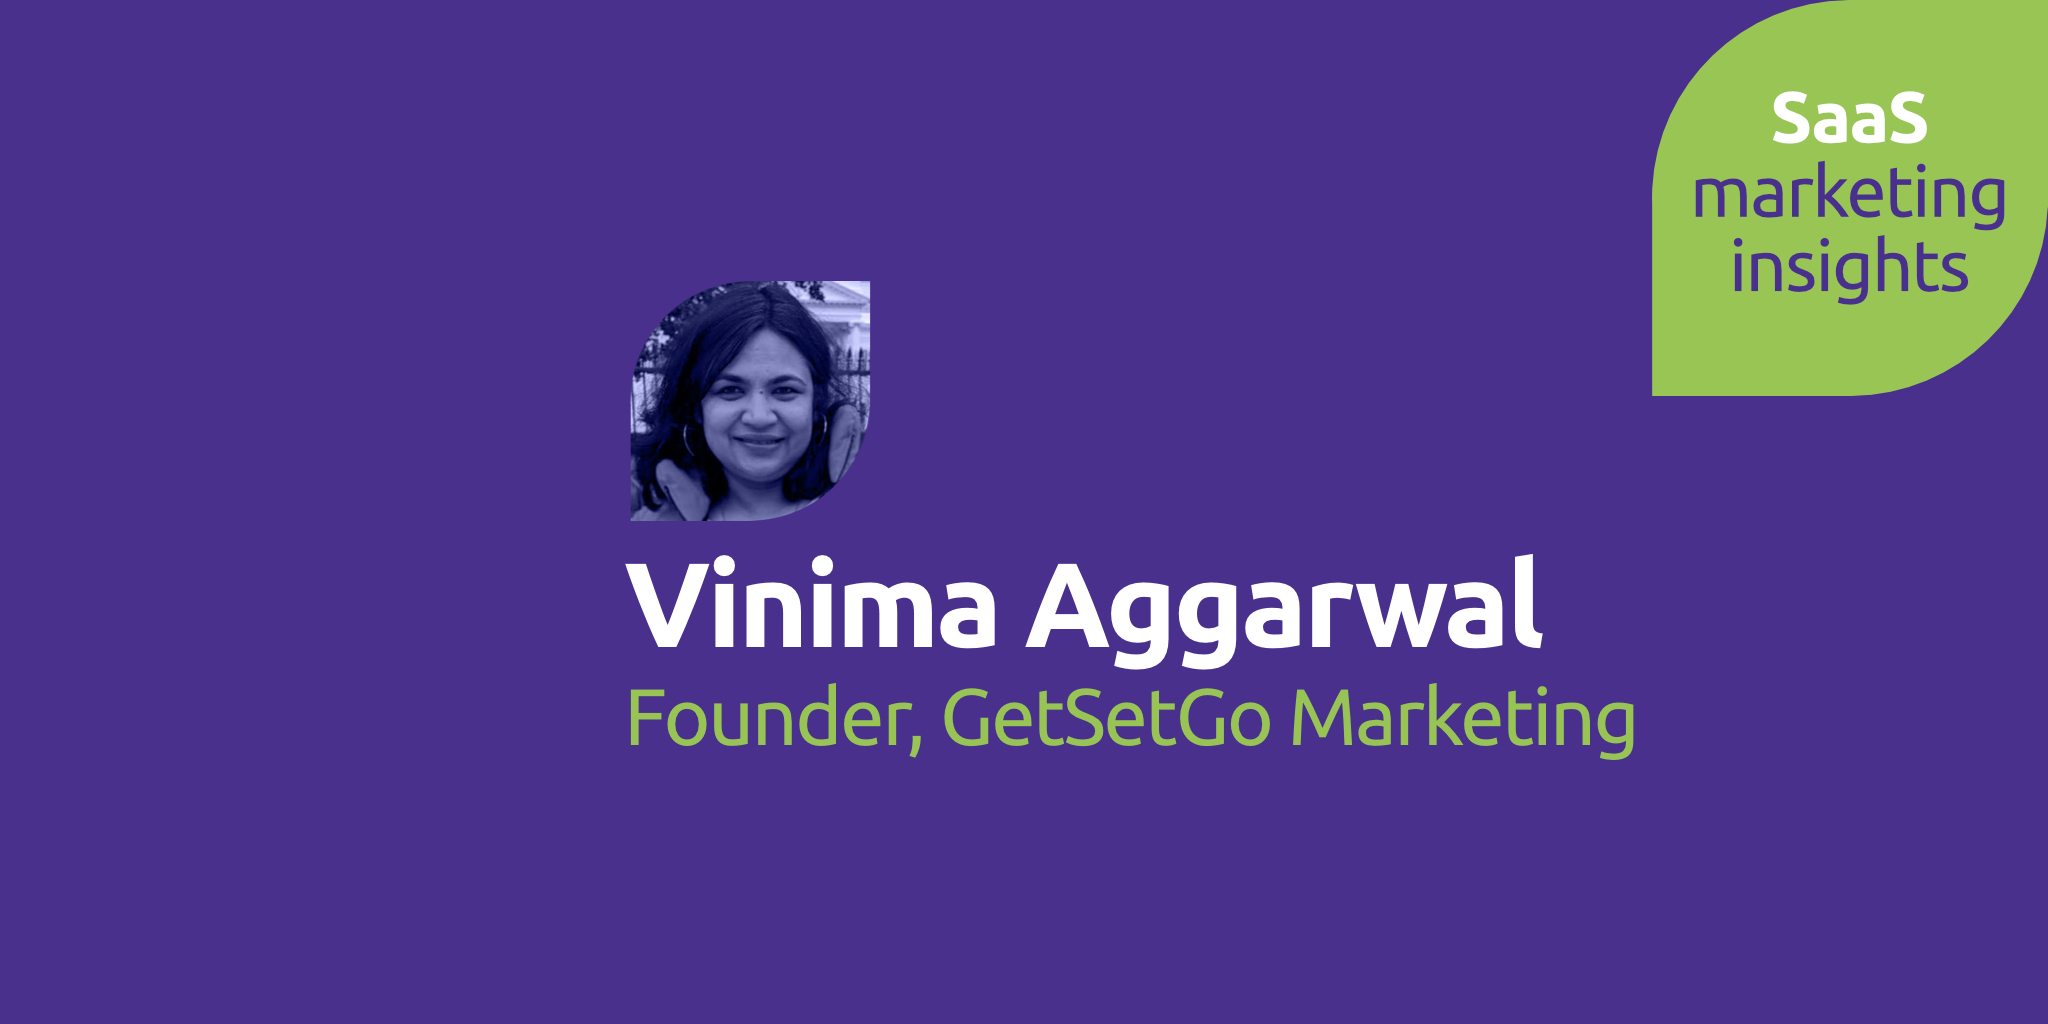 Vinima Aggarwal, GetSetGo Marketing